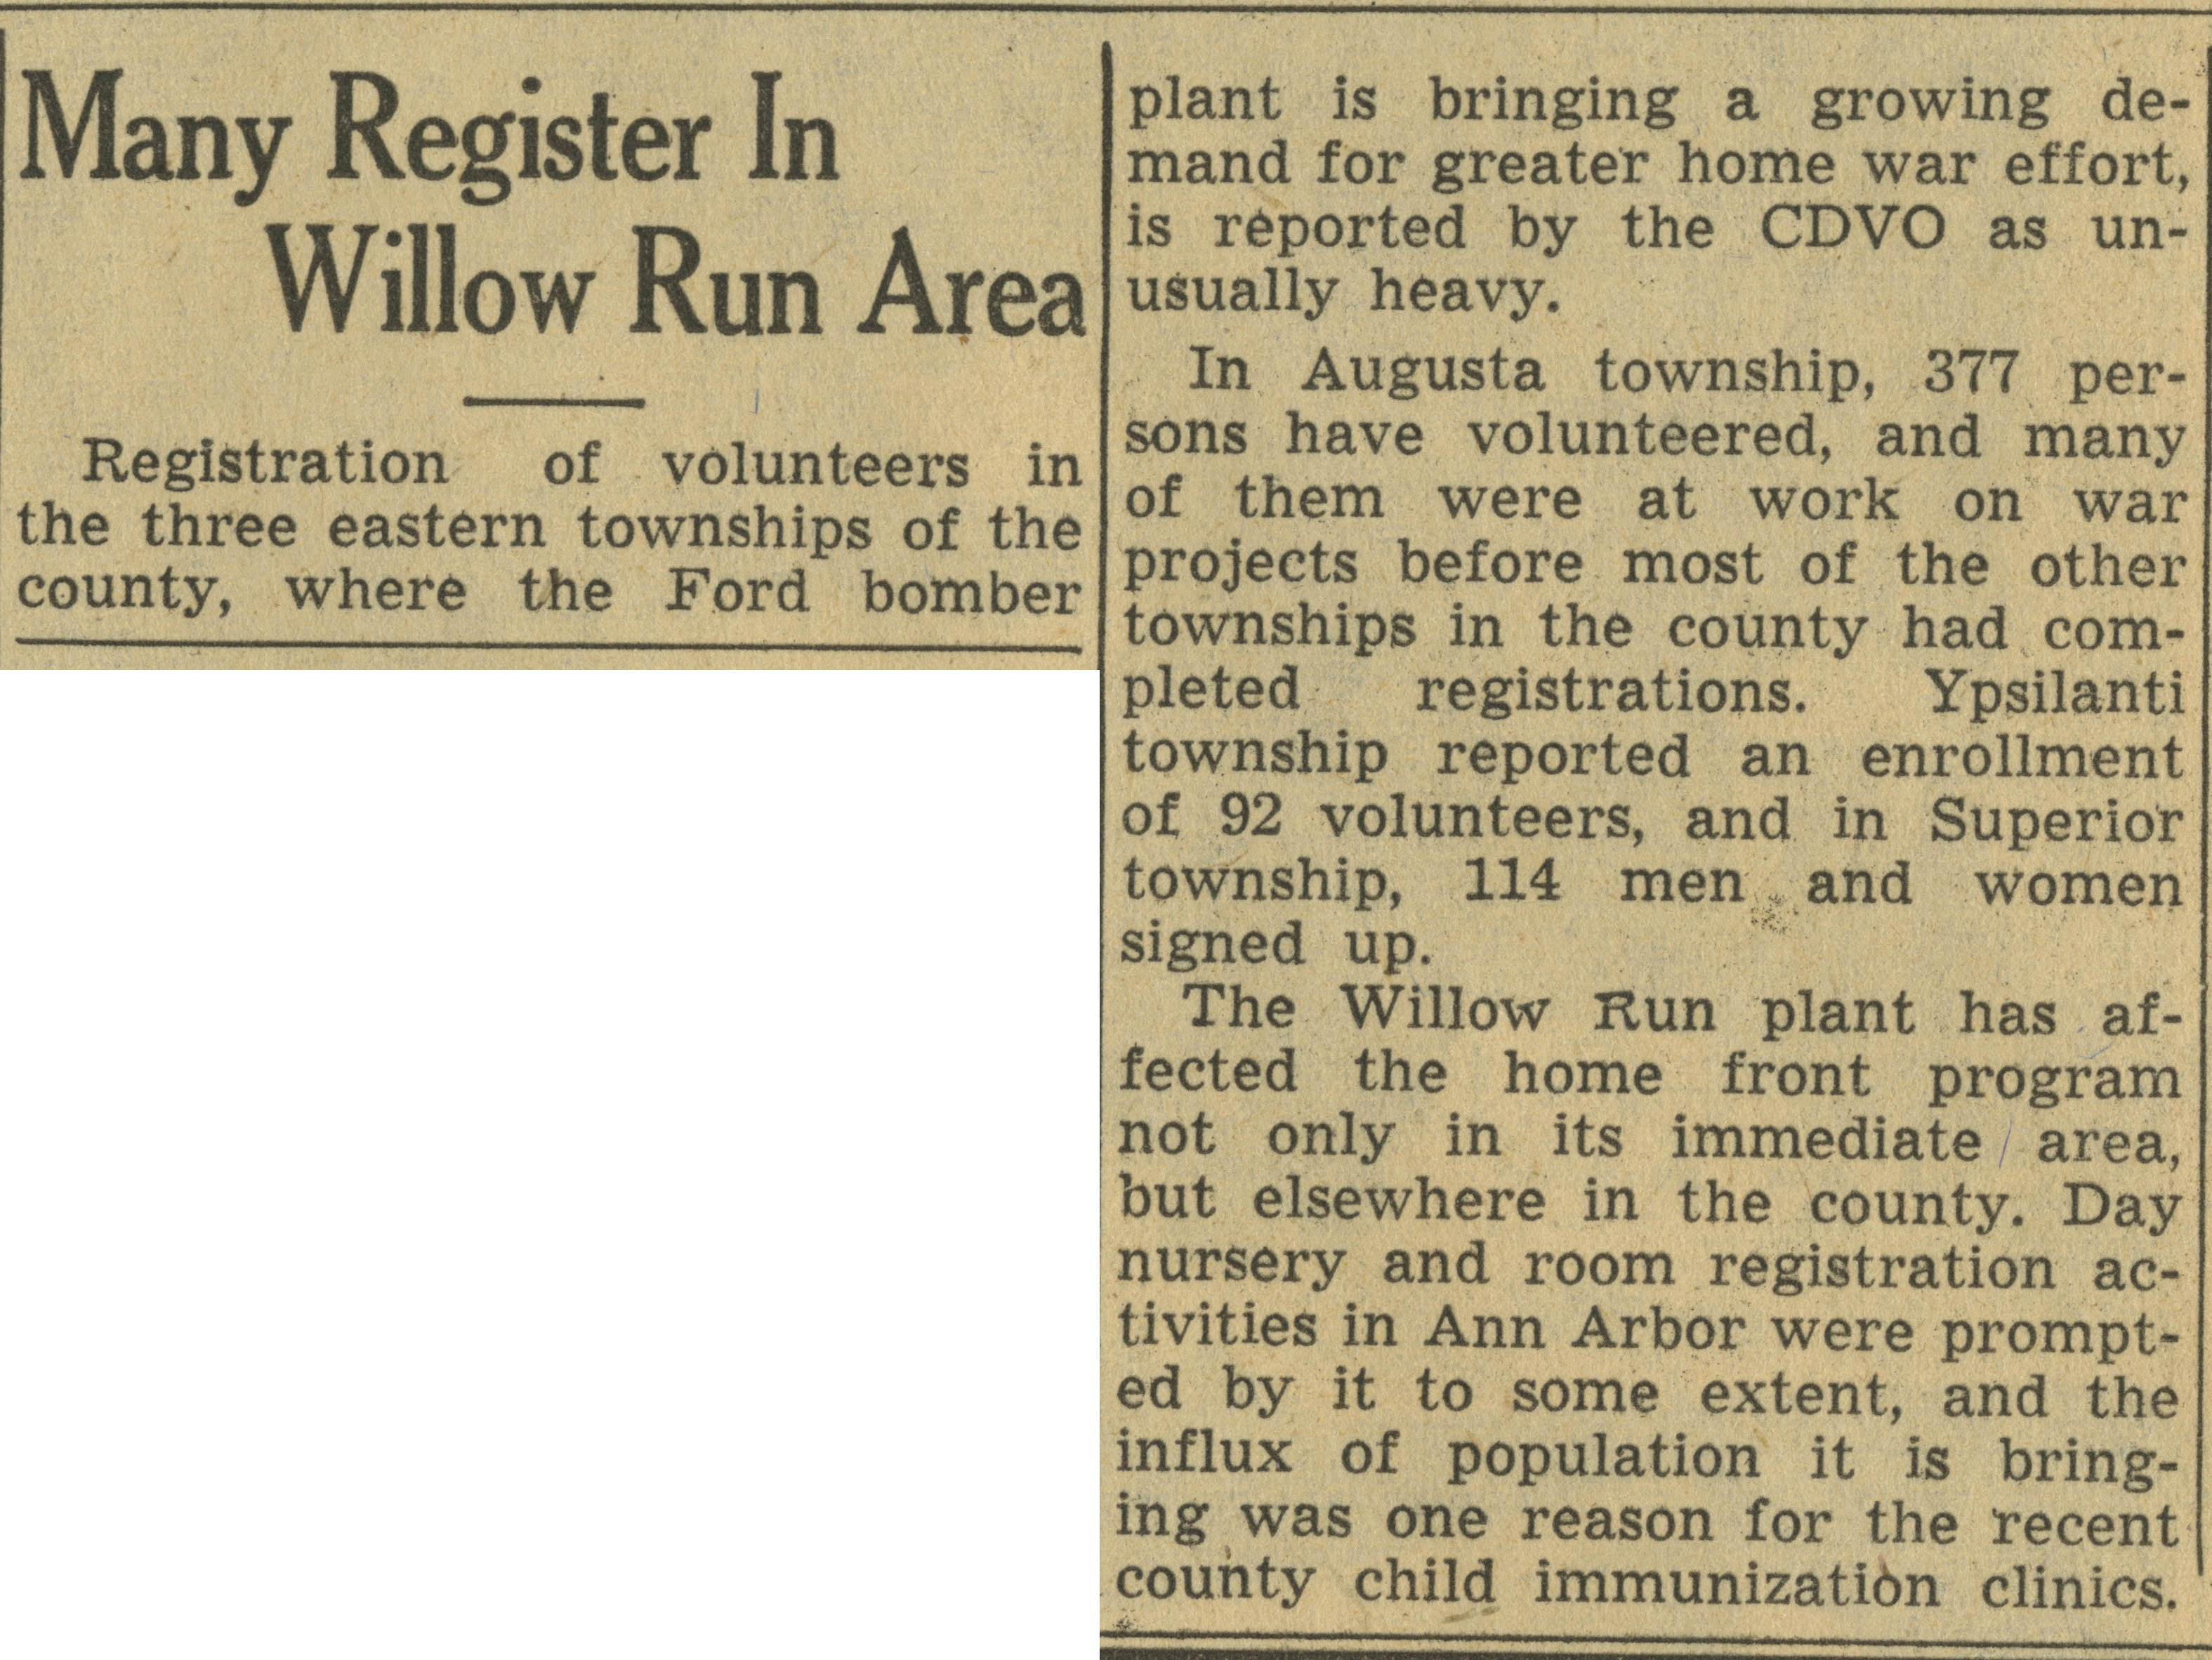 Many Register In Willow Run Area image